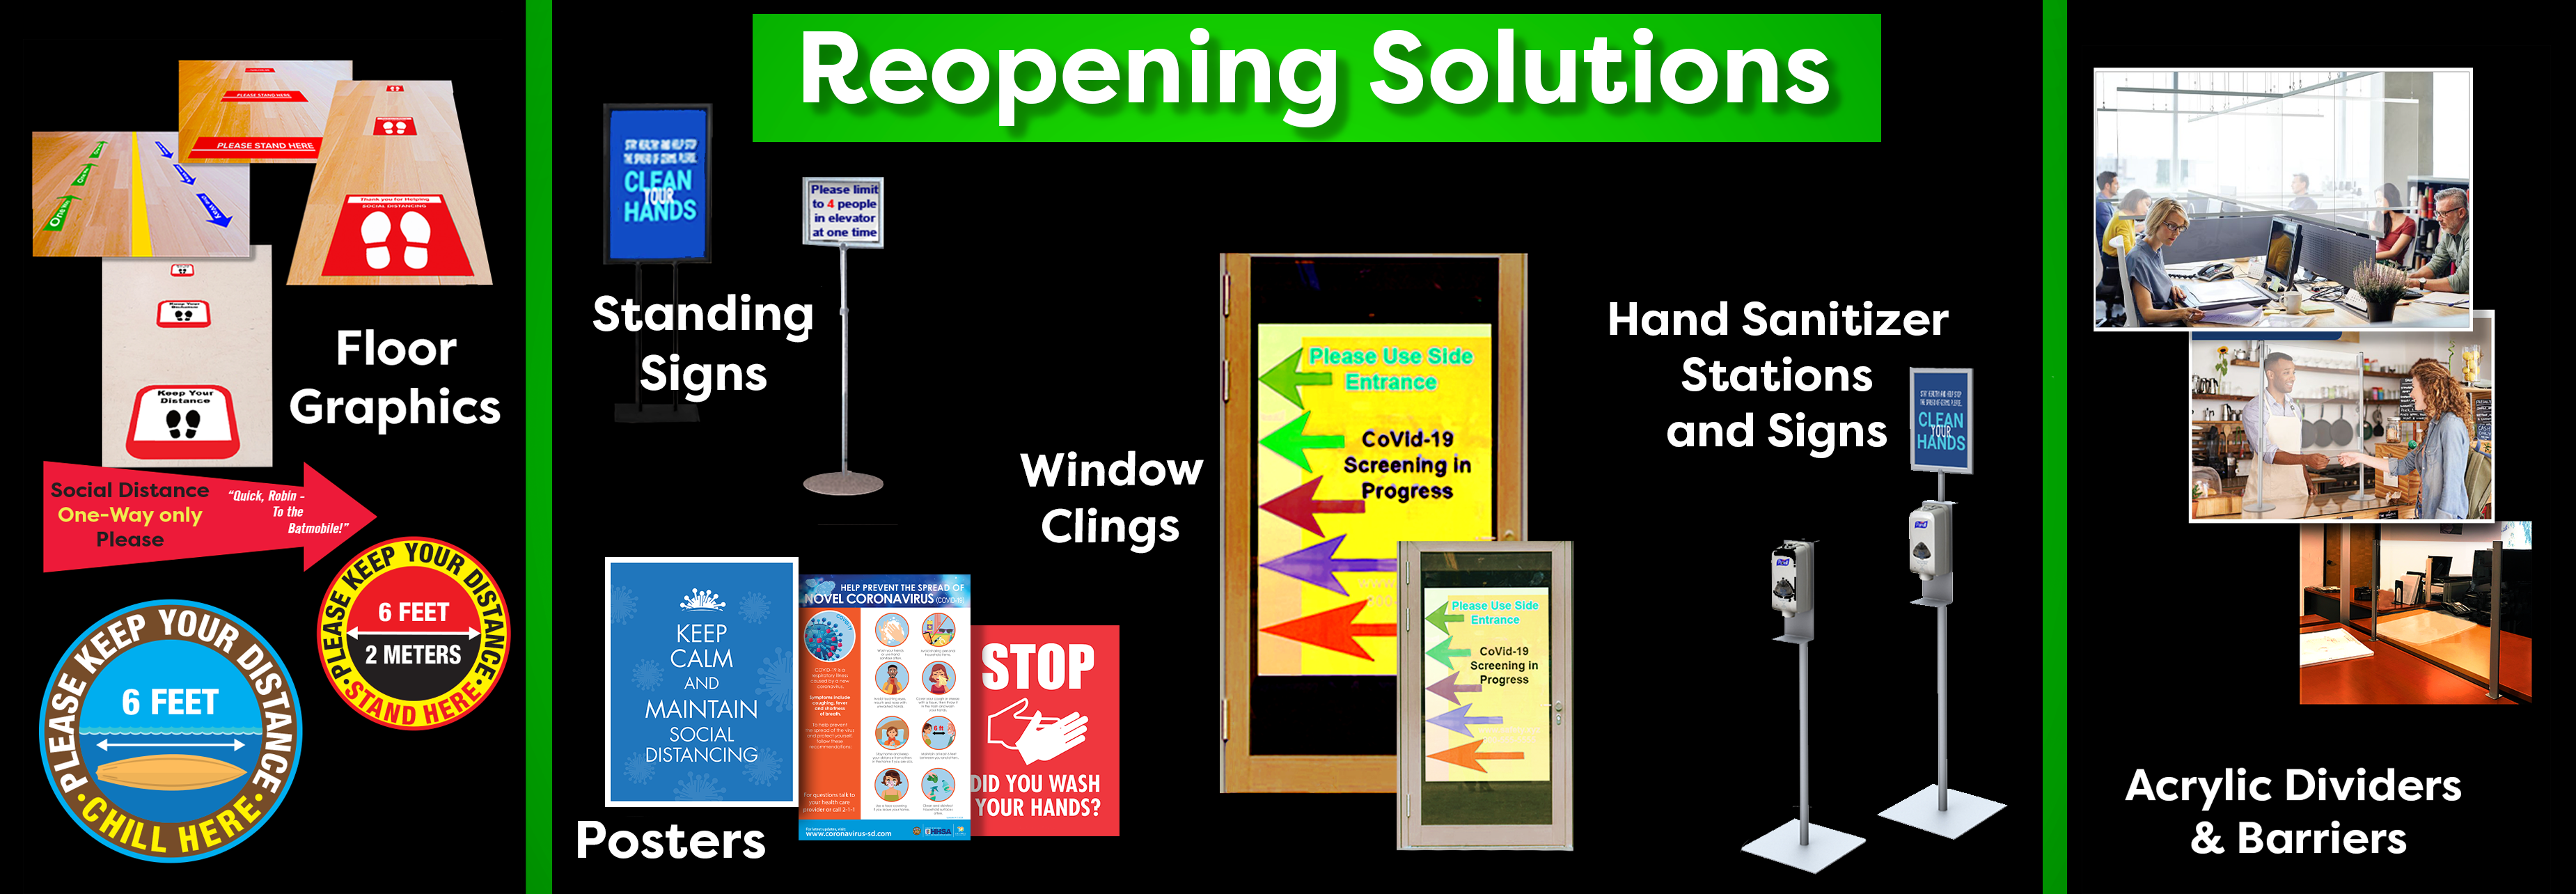 Reopening Solutions -